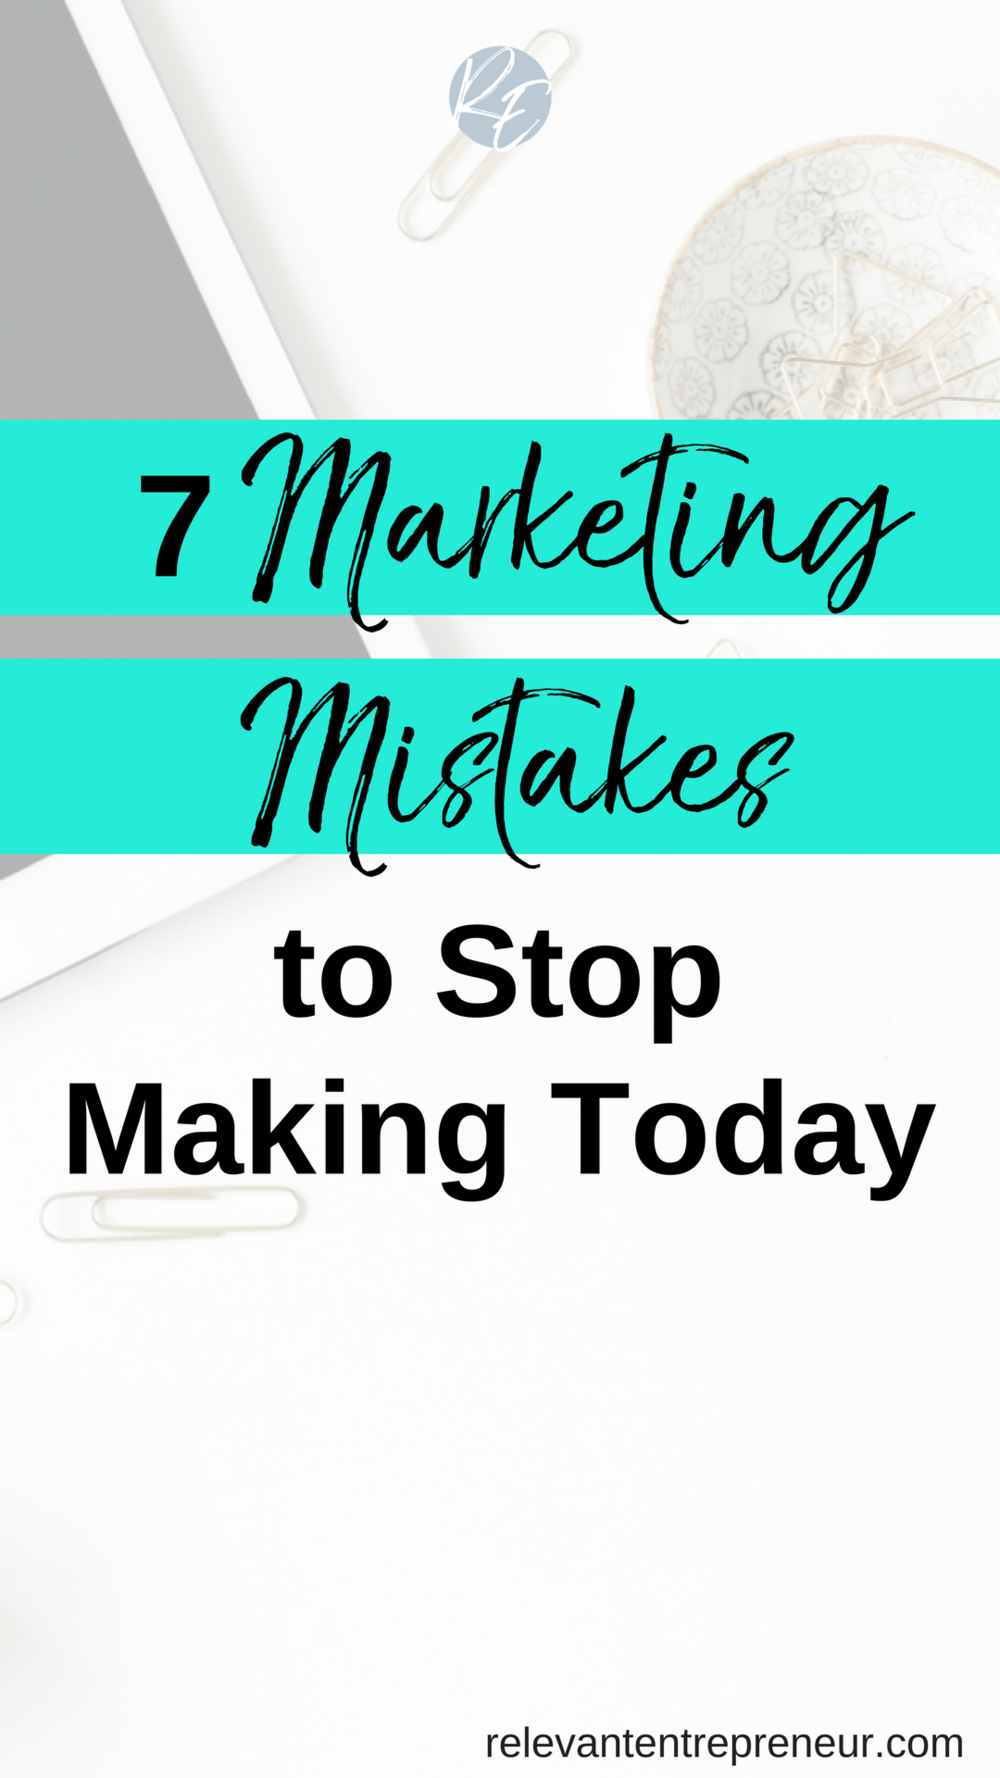 7 Marketing Mistakes to Stop Making Today -.png